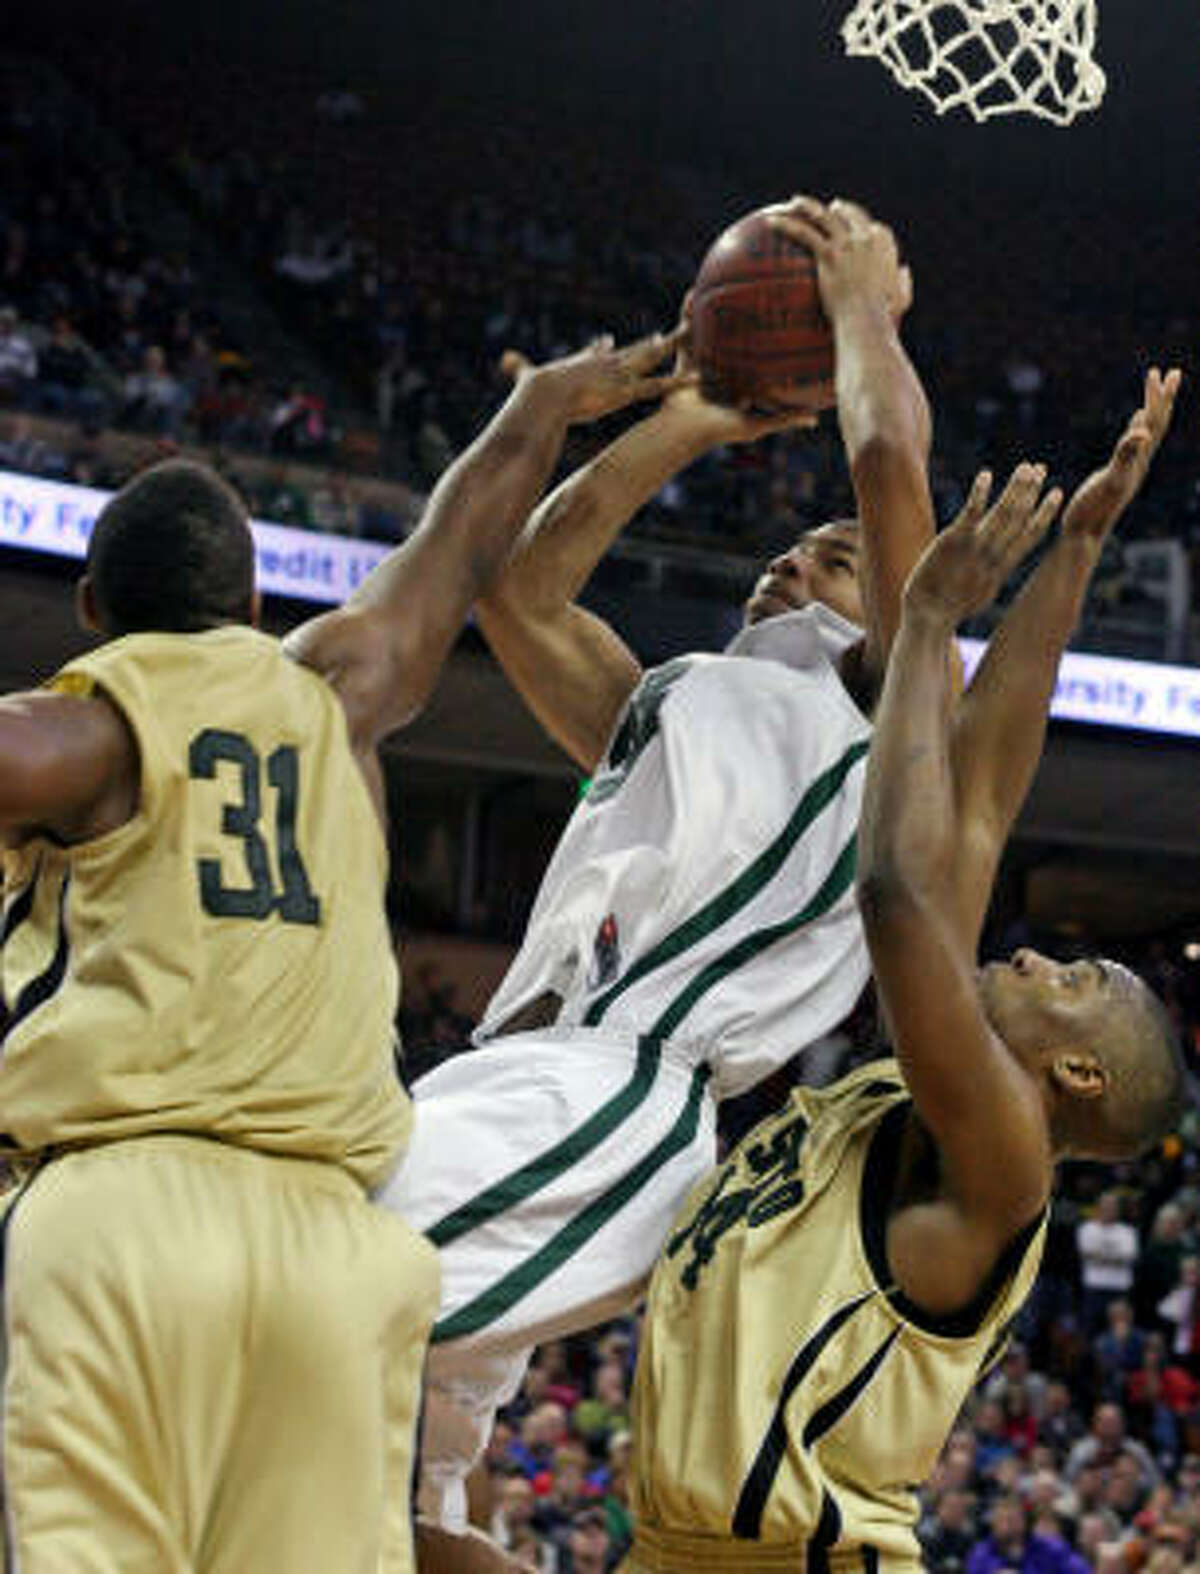 DeSoto's Darius Terrell, right, and Evan Washington (31) defend against Strake Jesuit's Joey Brooks, center.